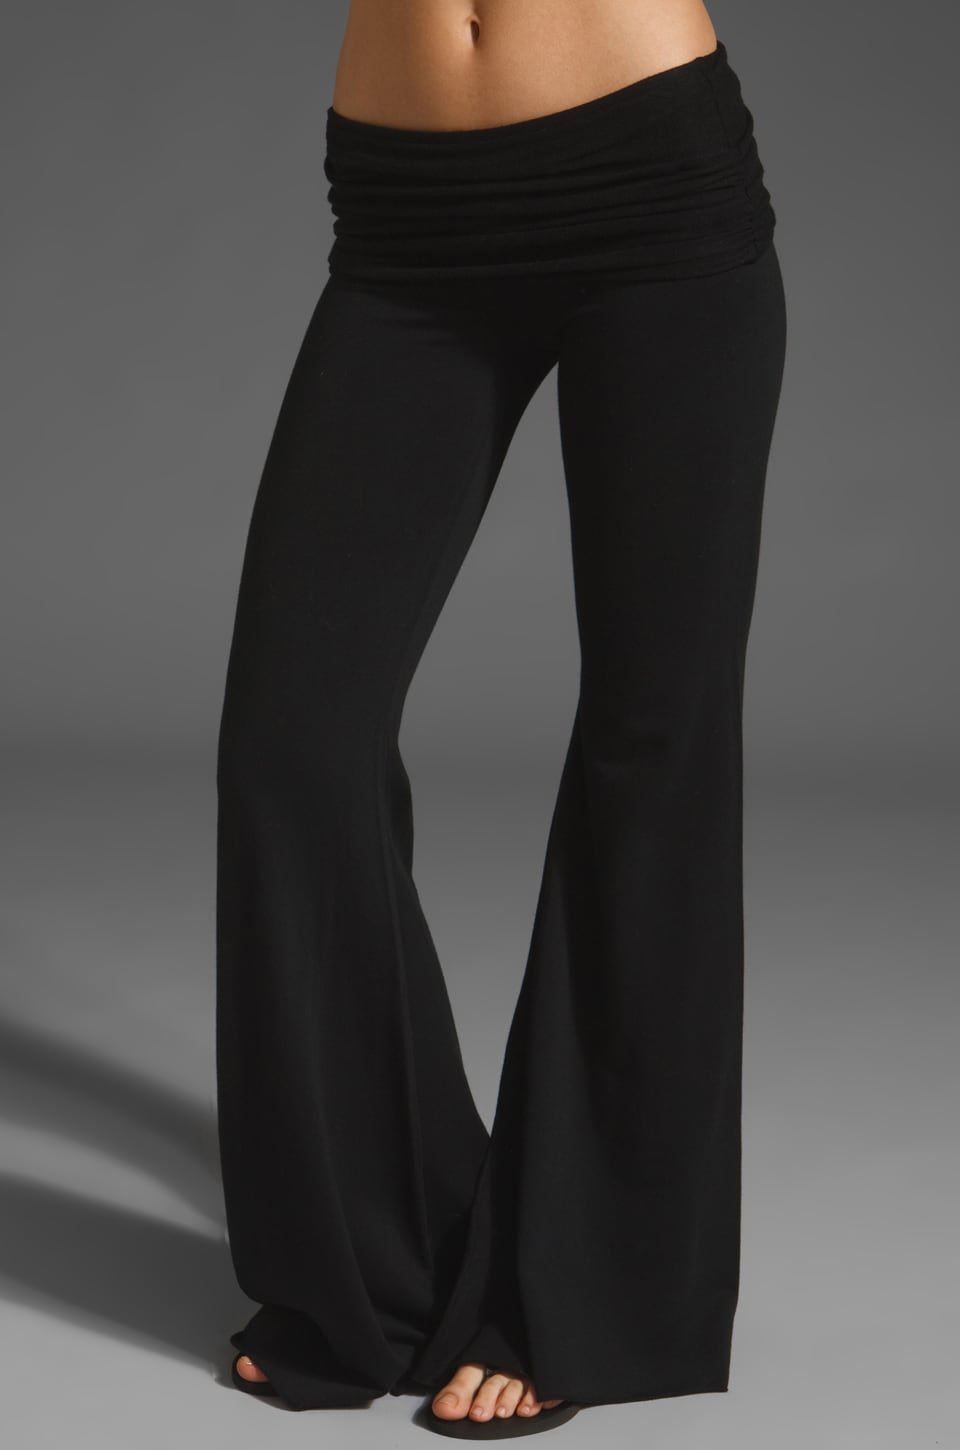 Nightcap Fleece Foldover Flare Pant in Black